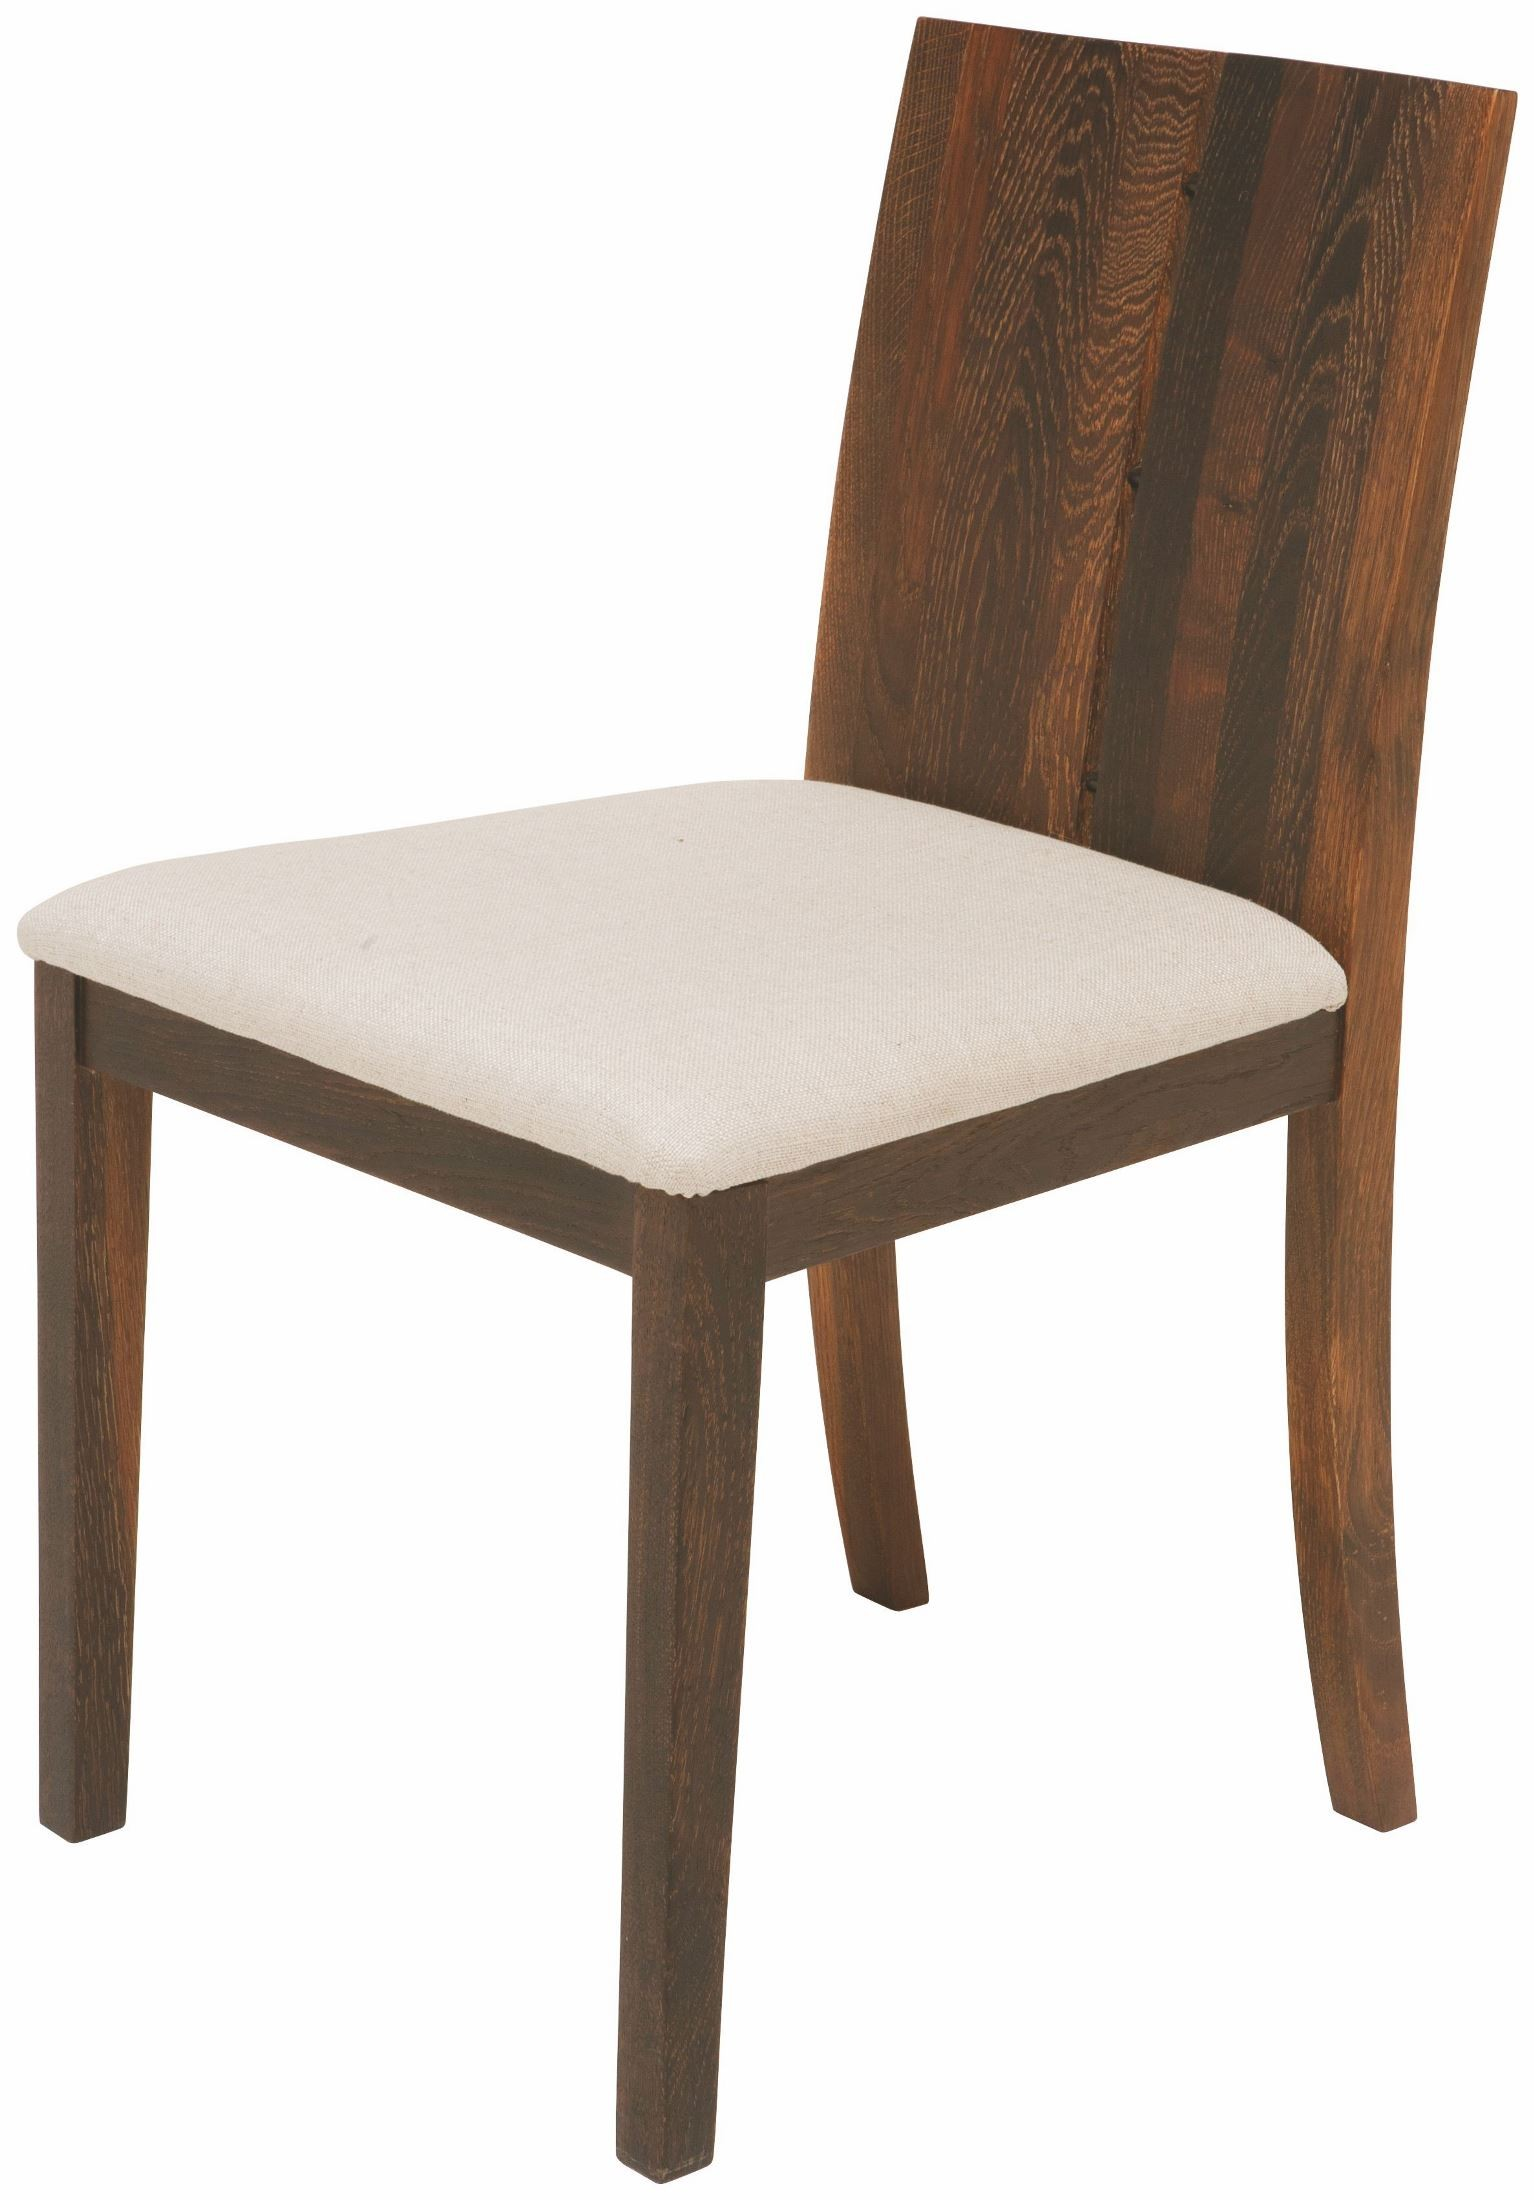 Dining Chair Fabric Eva Beige Fabric Dining Chair Hgsr284 Nuevo